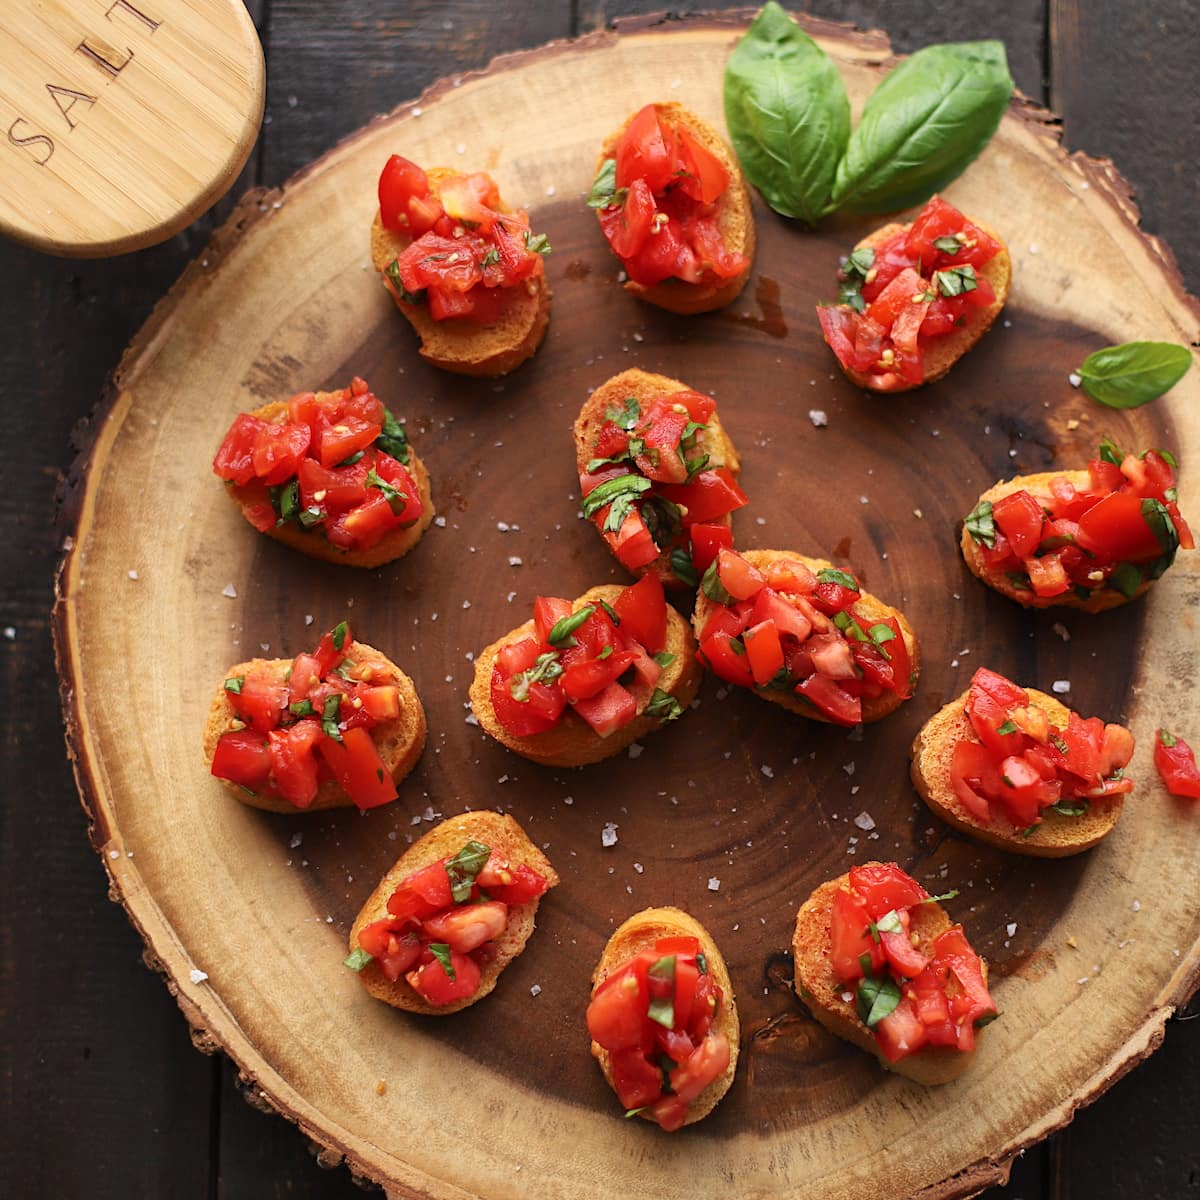 Tomatoes and basil on bread on a wood slab.